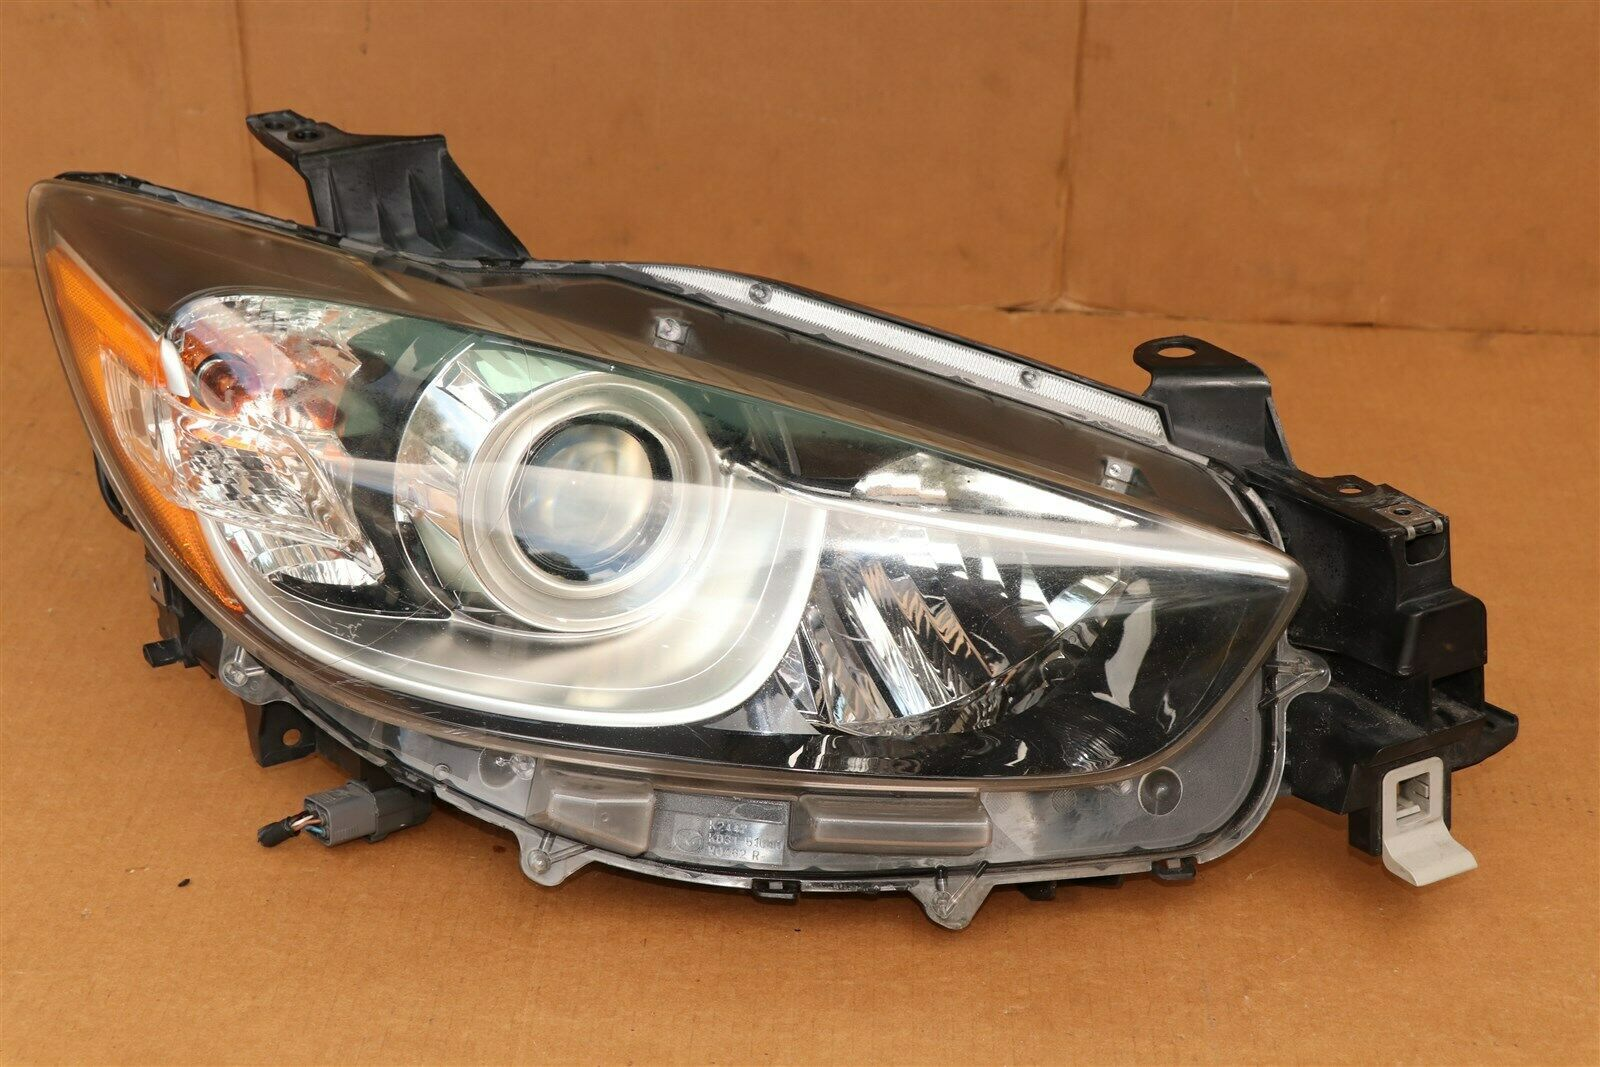 13-16 Mazda CX-5 CX5 Headlight Lamp Halogen Passenger Right RH